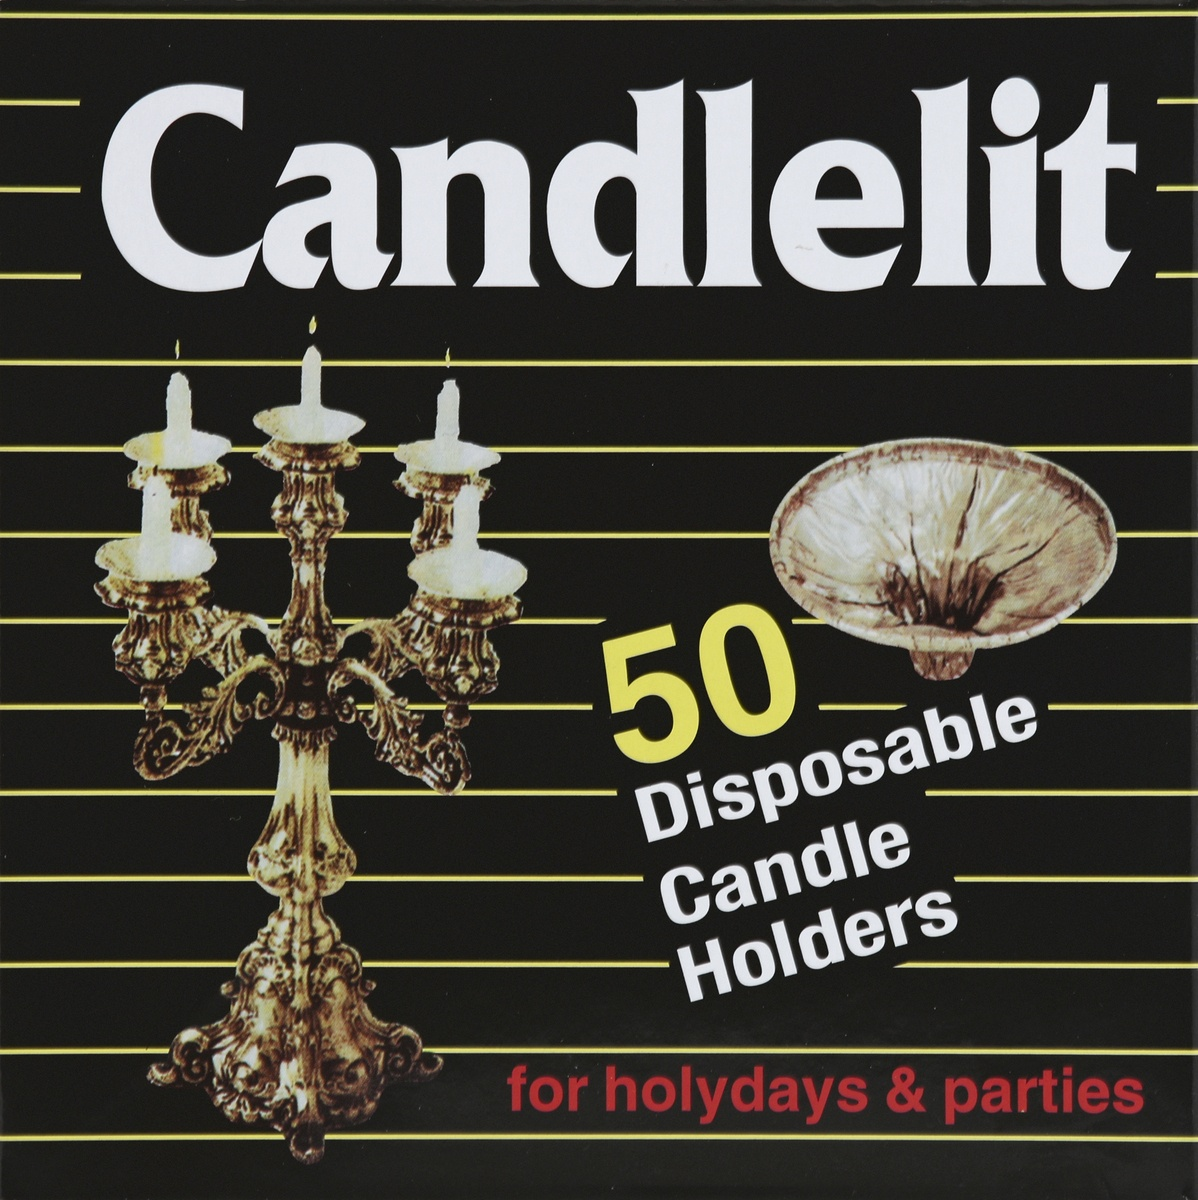 slide 4 of 4, Candlelit Disposable Candle Holders,